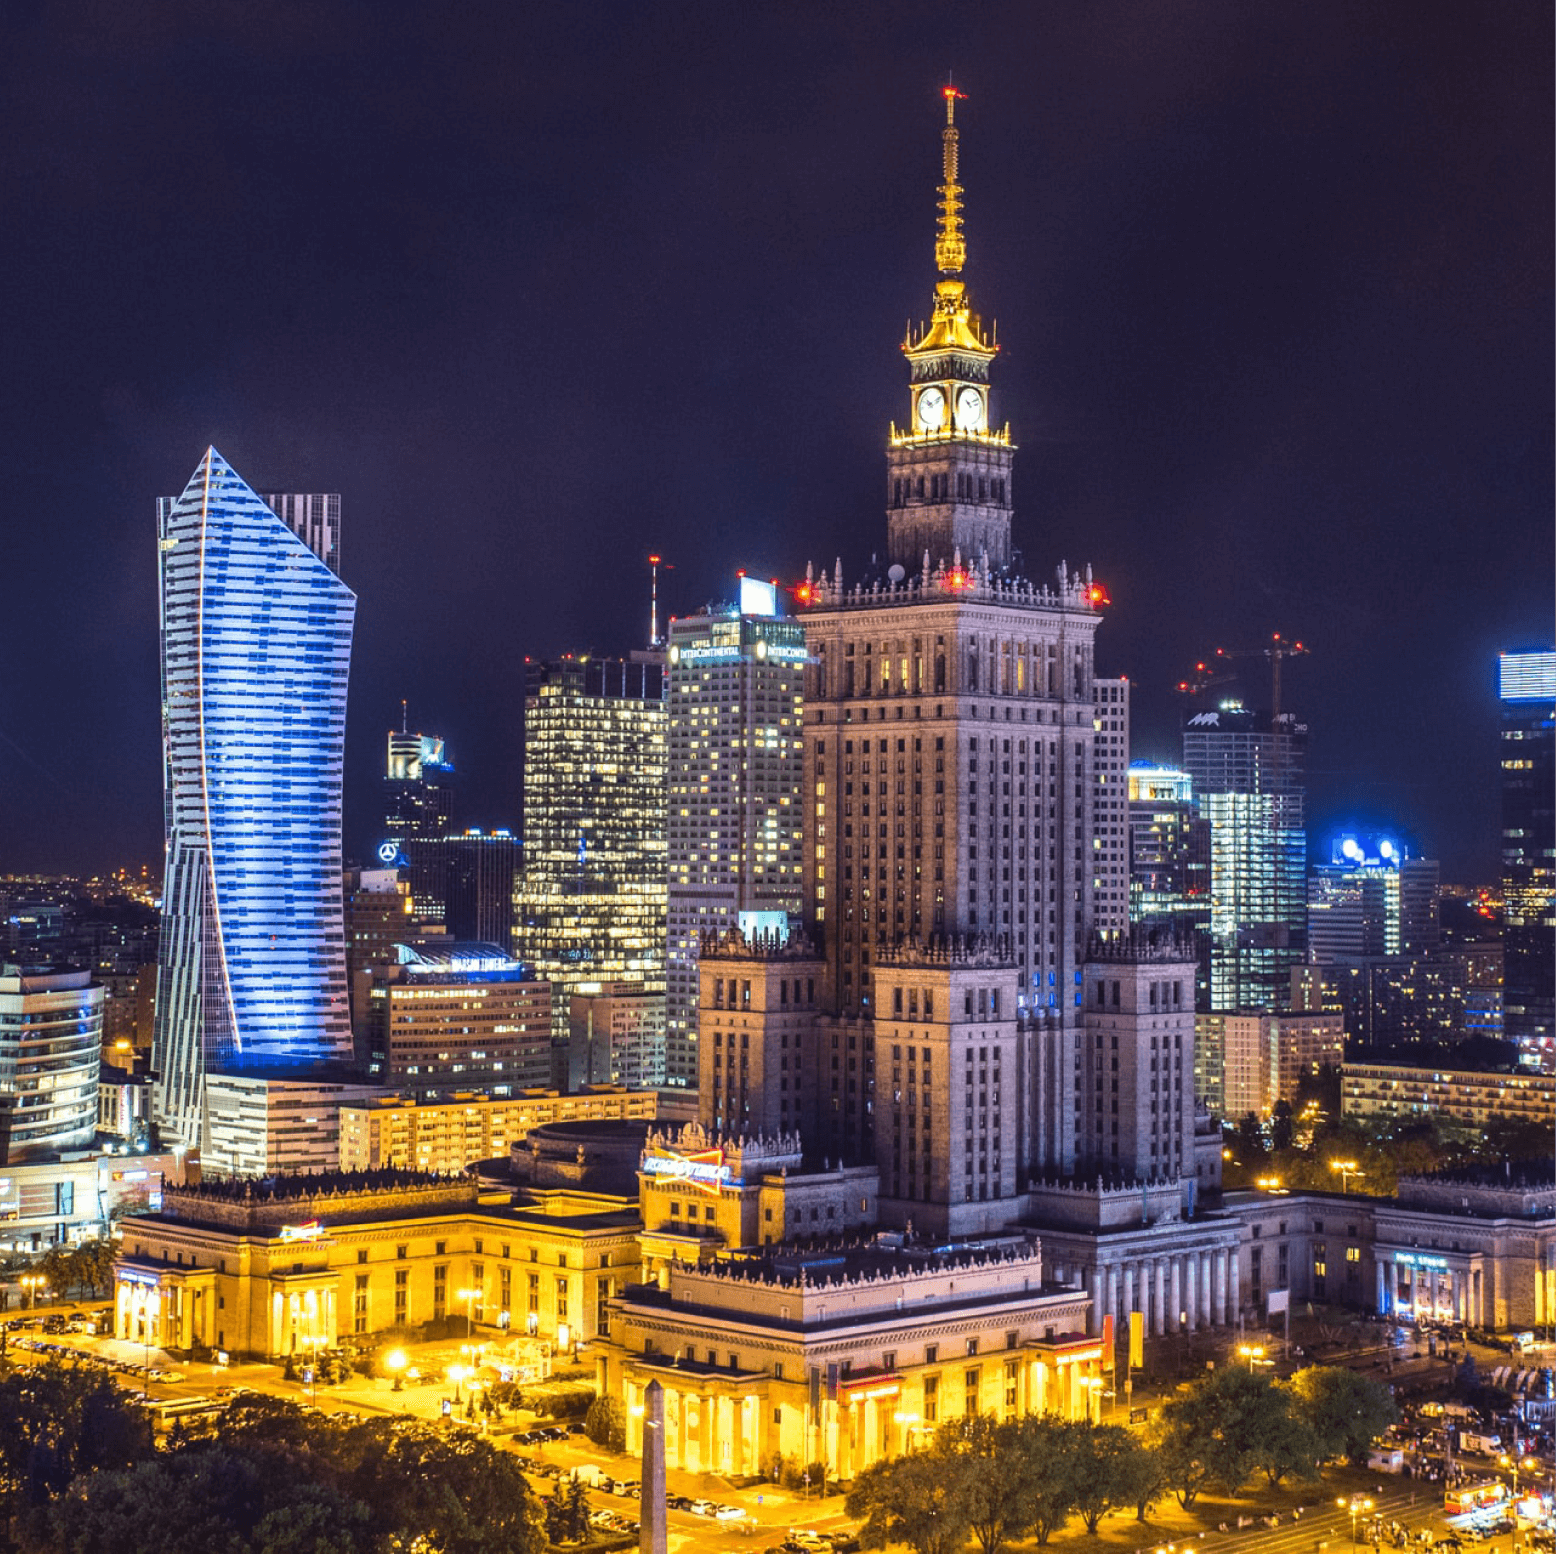 Aerial View of Warsaw City Center with Palace of Culture and Science and Other New Skyscrapers by night